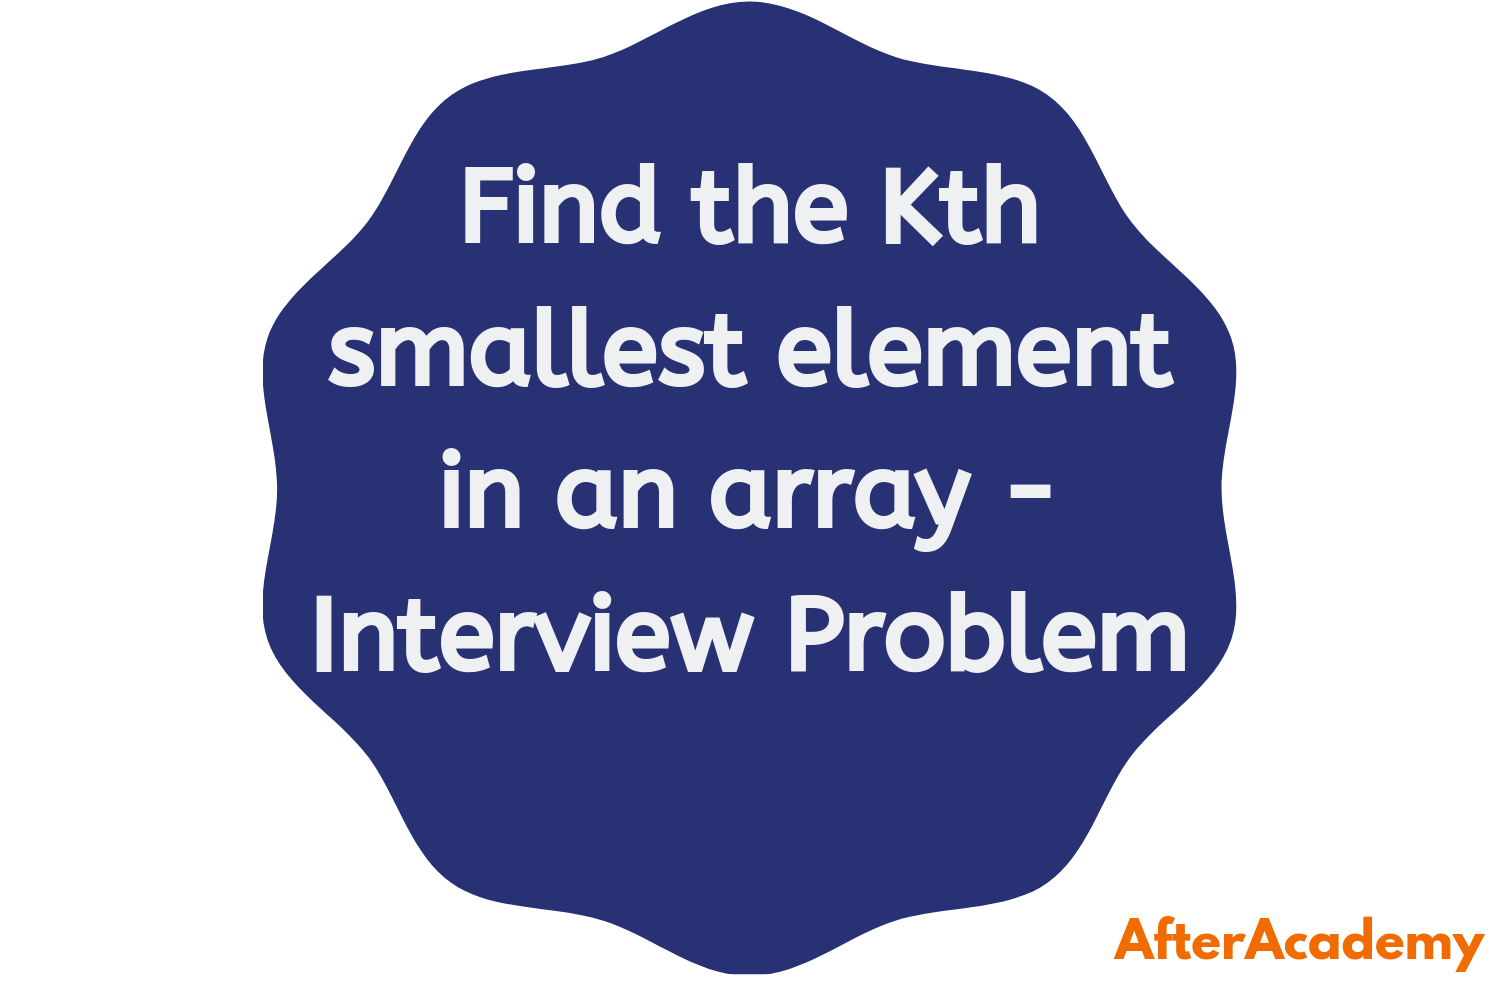 Find the kth smallest element in an array